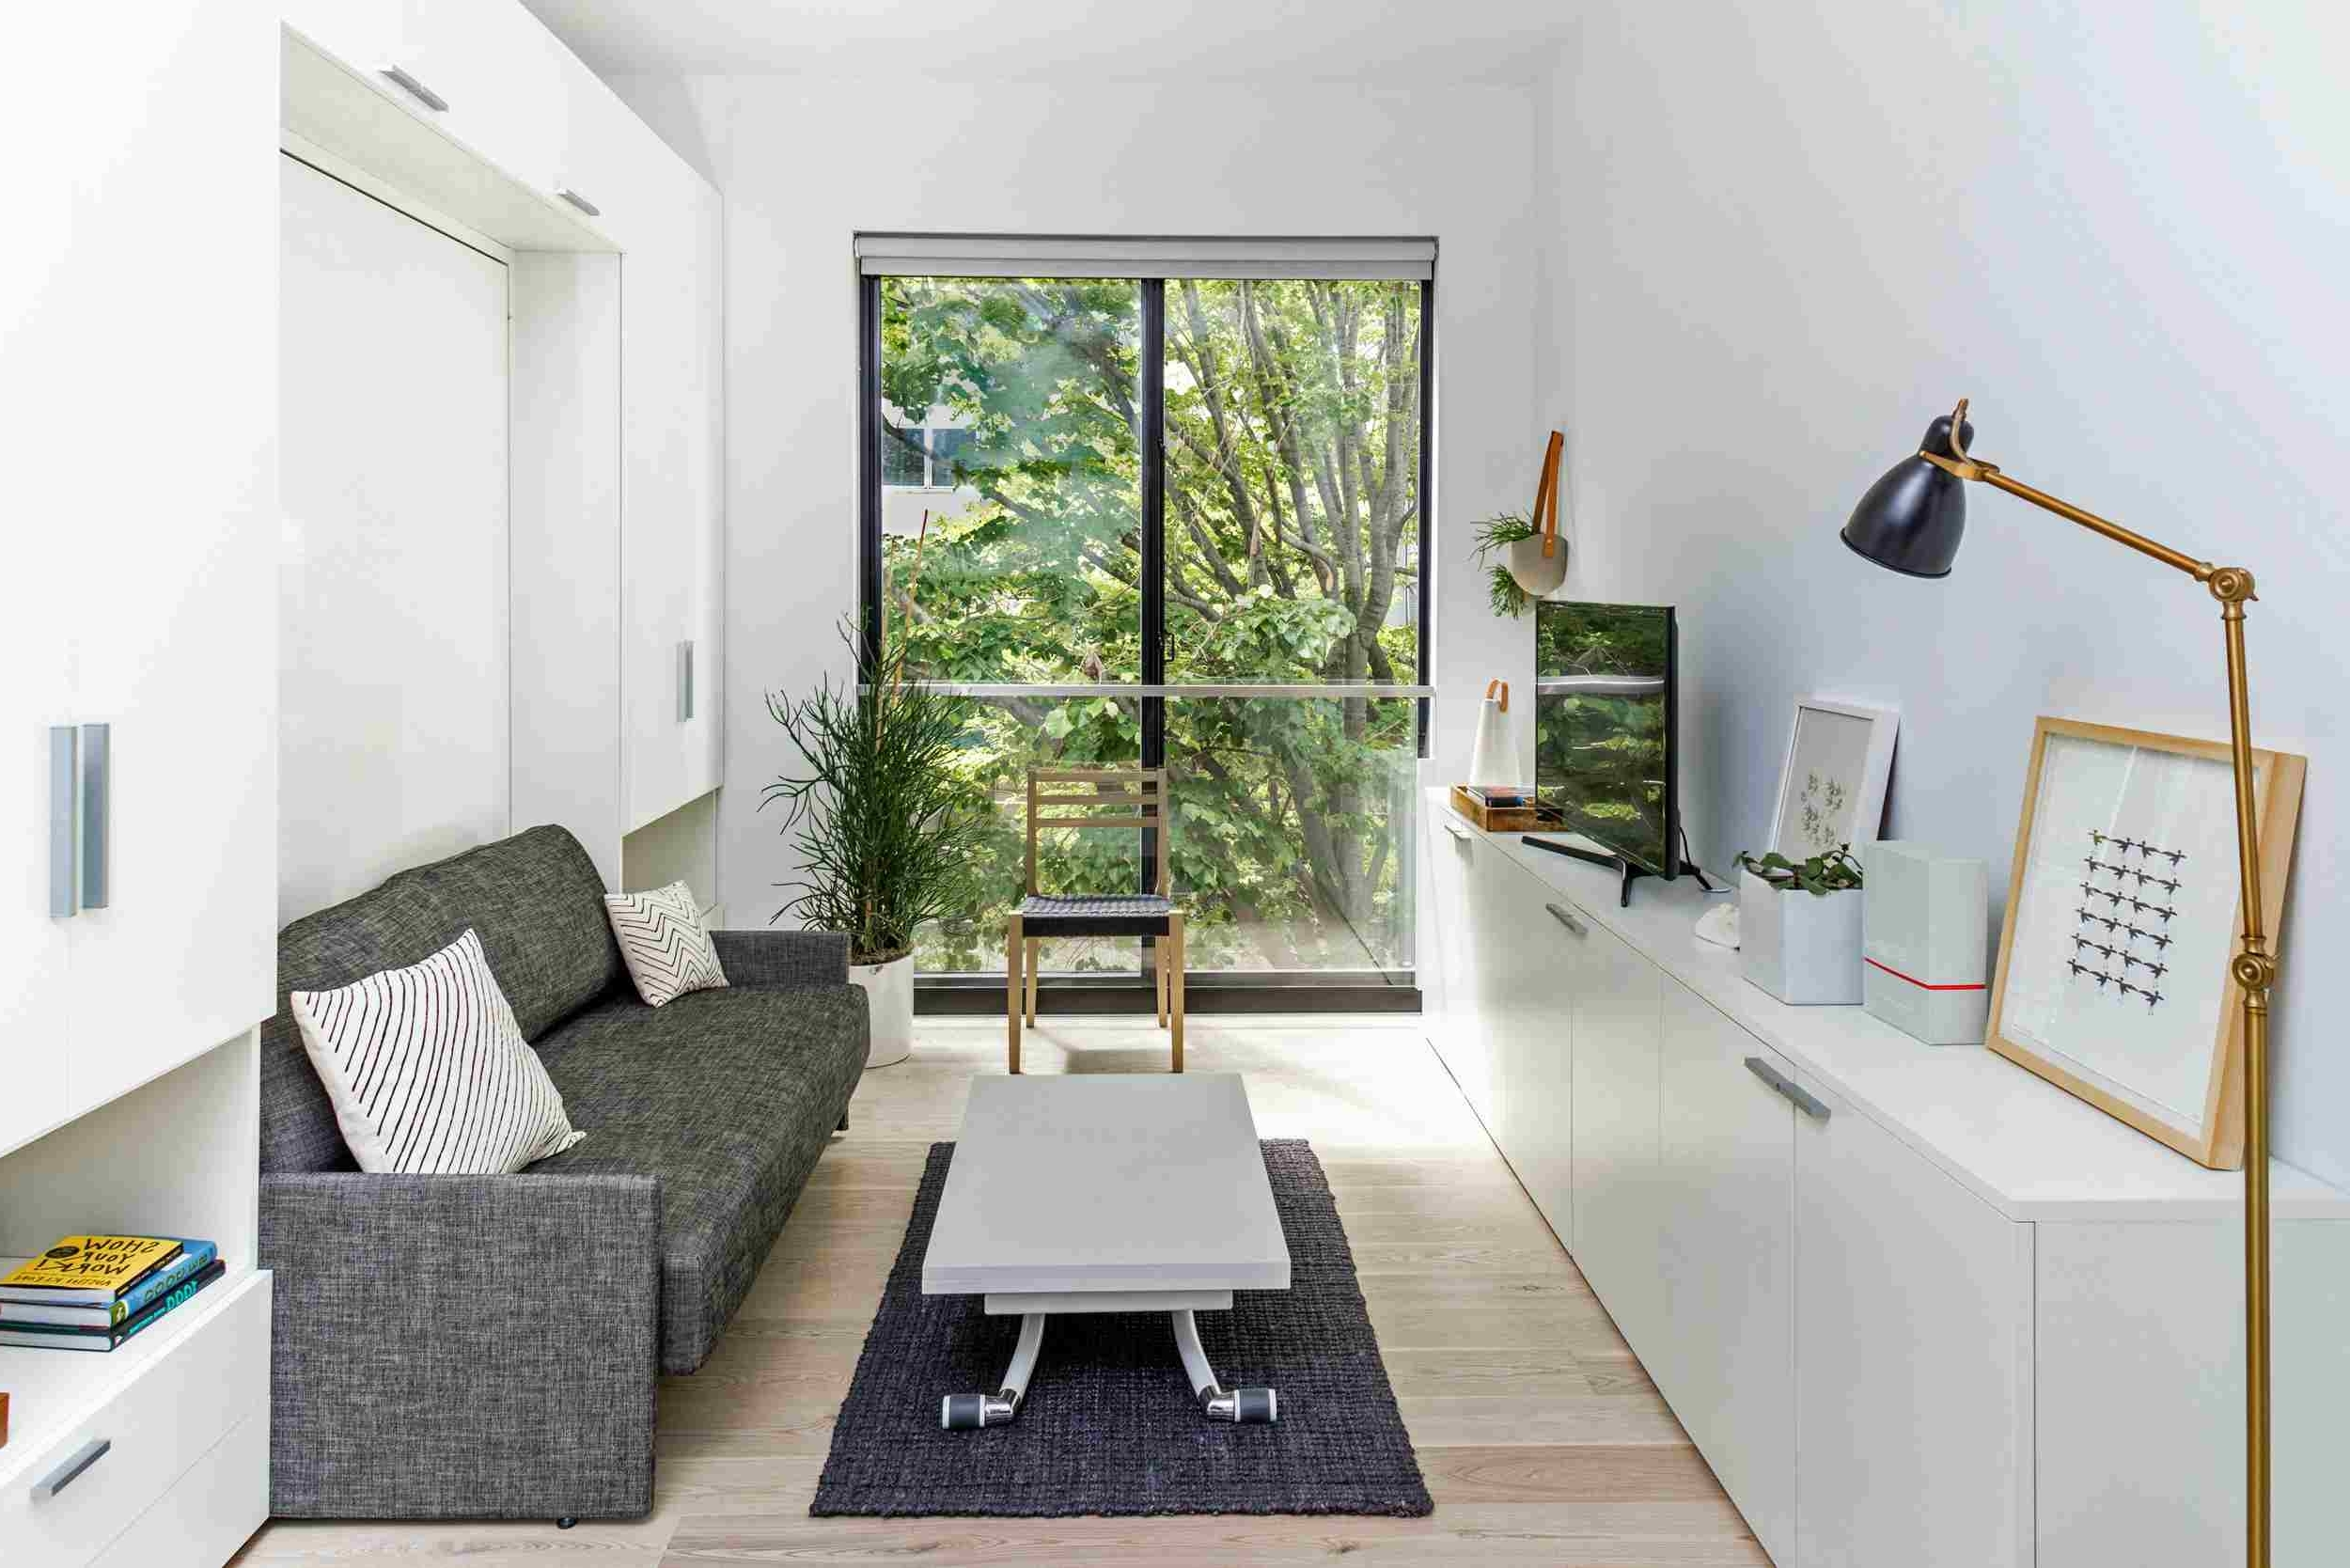 12 Perfect Studio Apartment Layouts That Work 10+ Micro Apartment Design Plans Inspirations